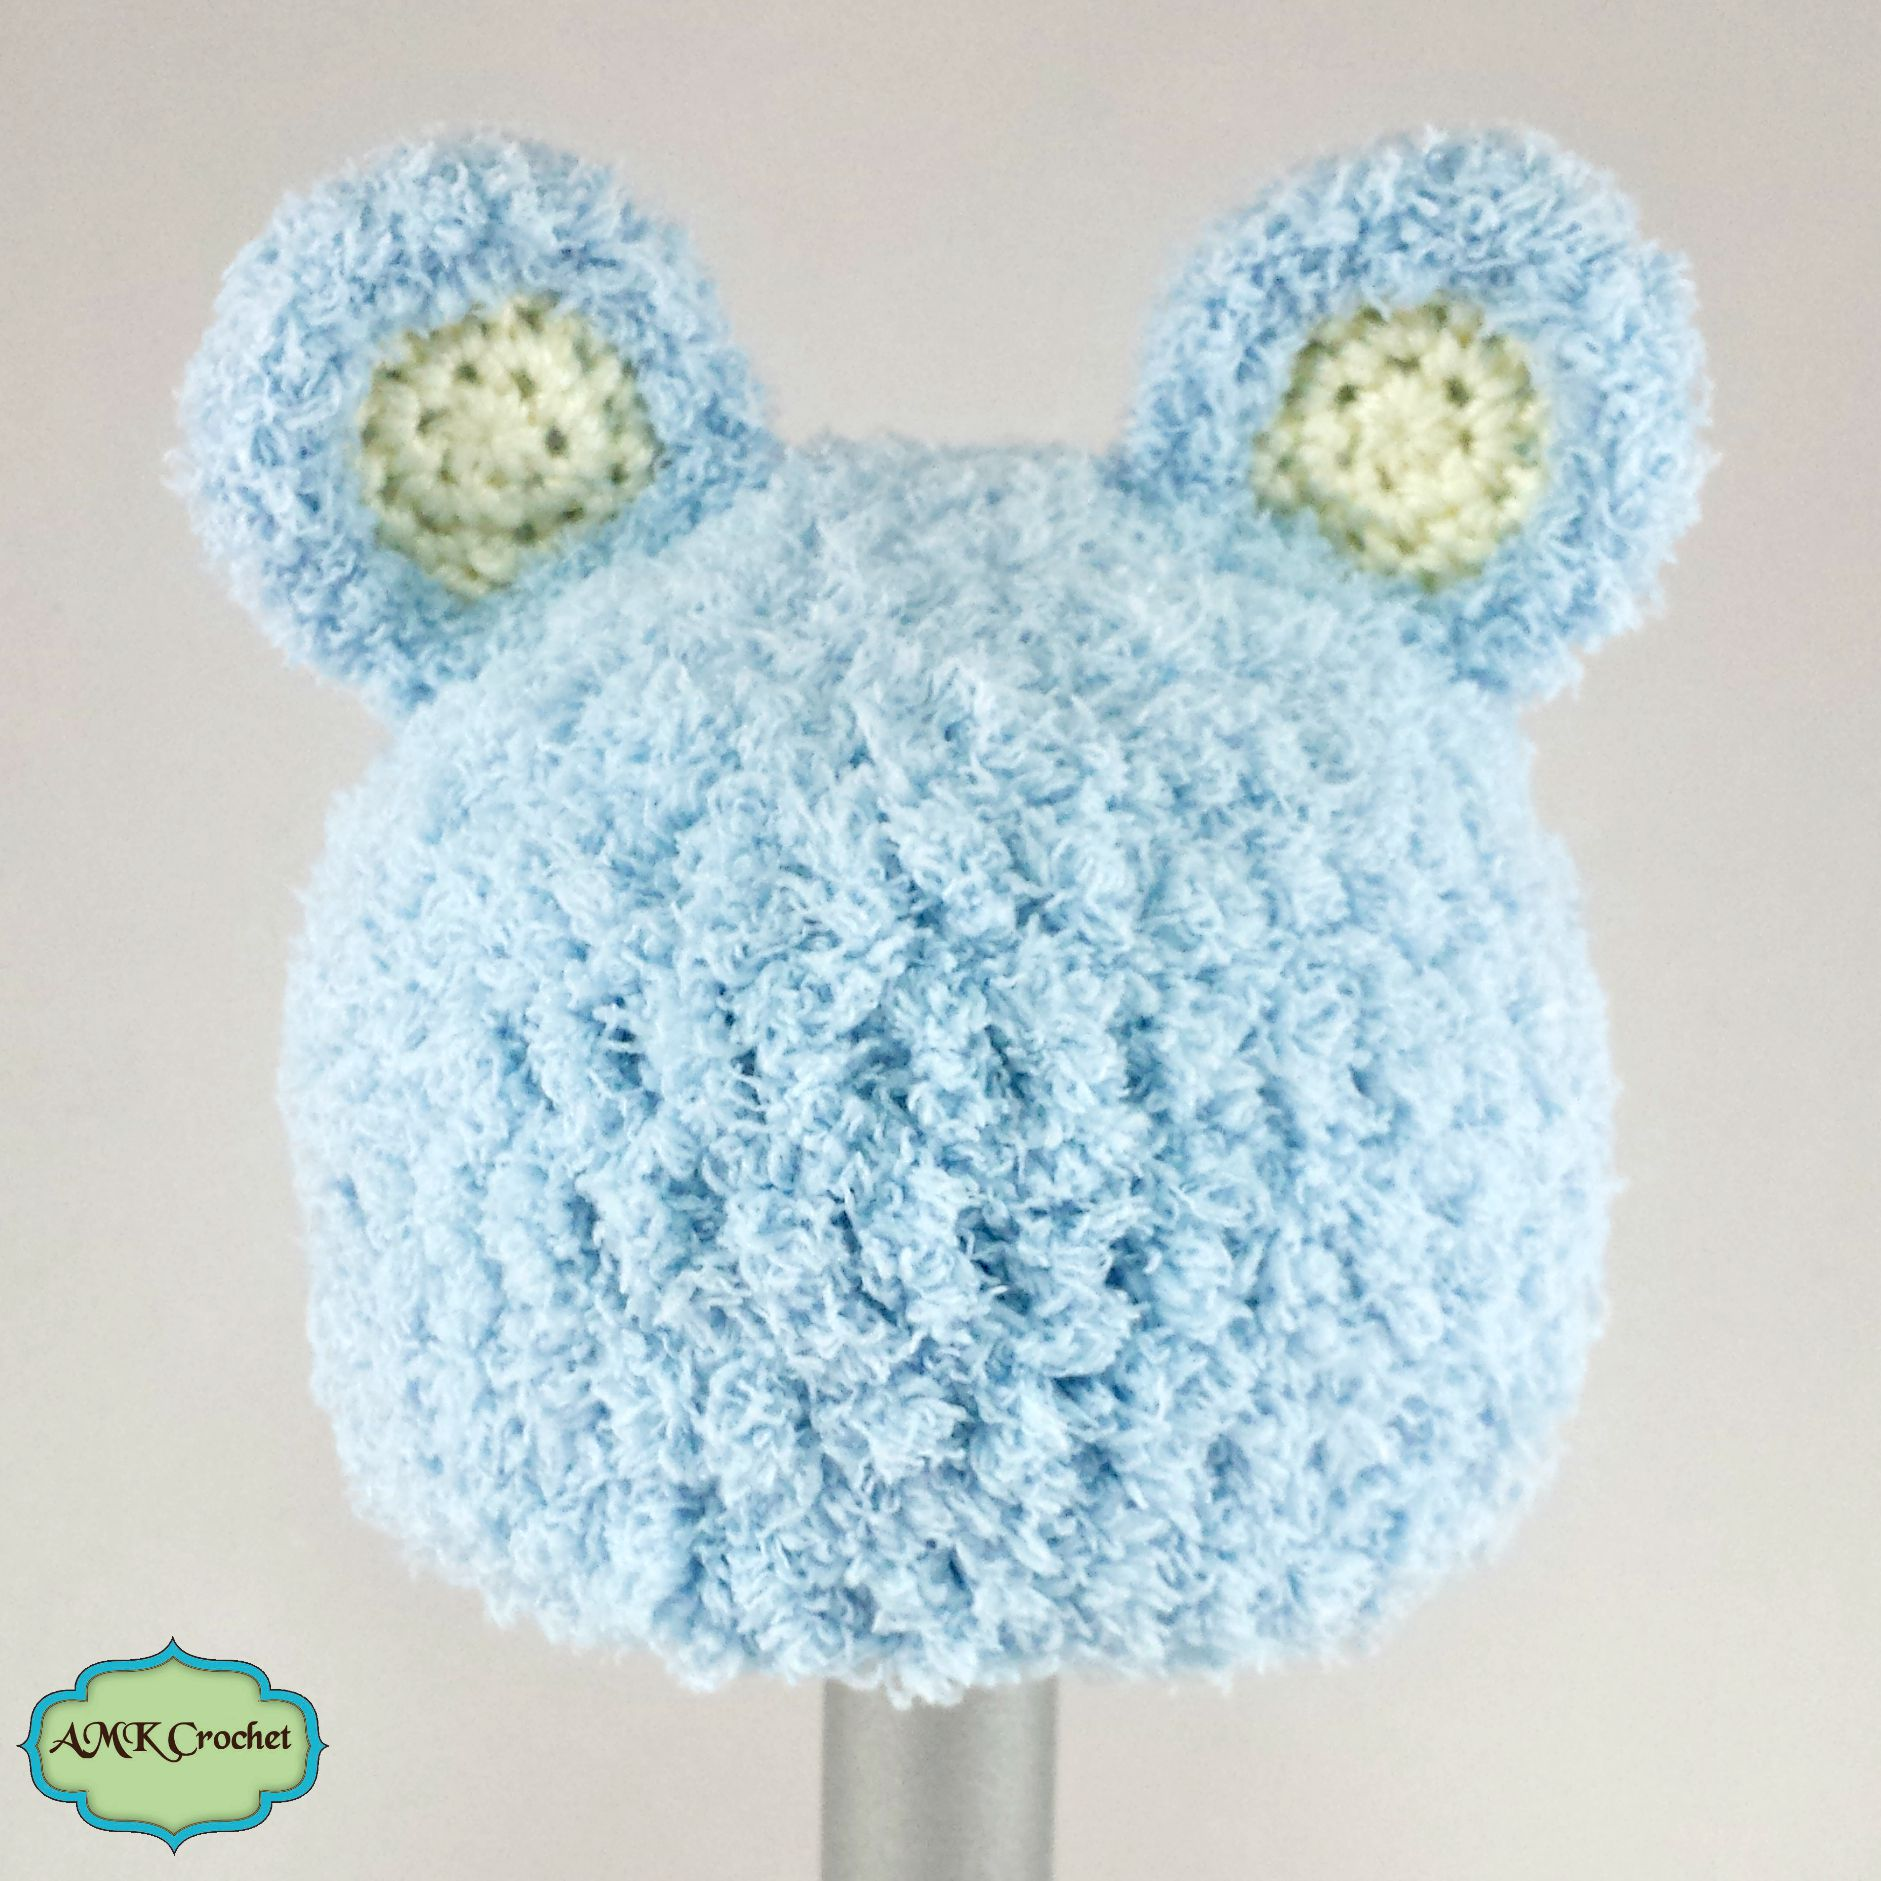 Crochet Hat Pattern Super Bulky Yarn : Crochet Tips, Tricks, Photo Tutorials, and Crochet Patterns